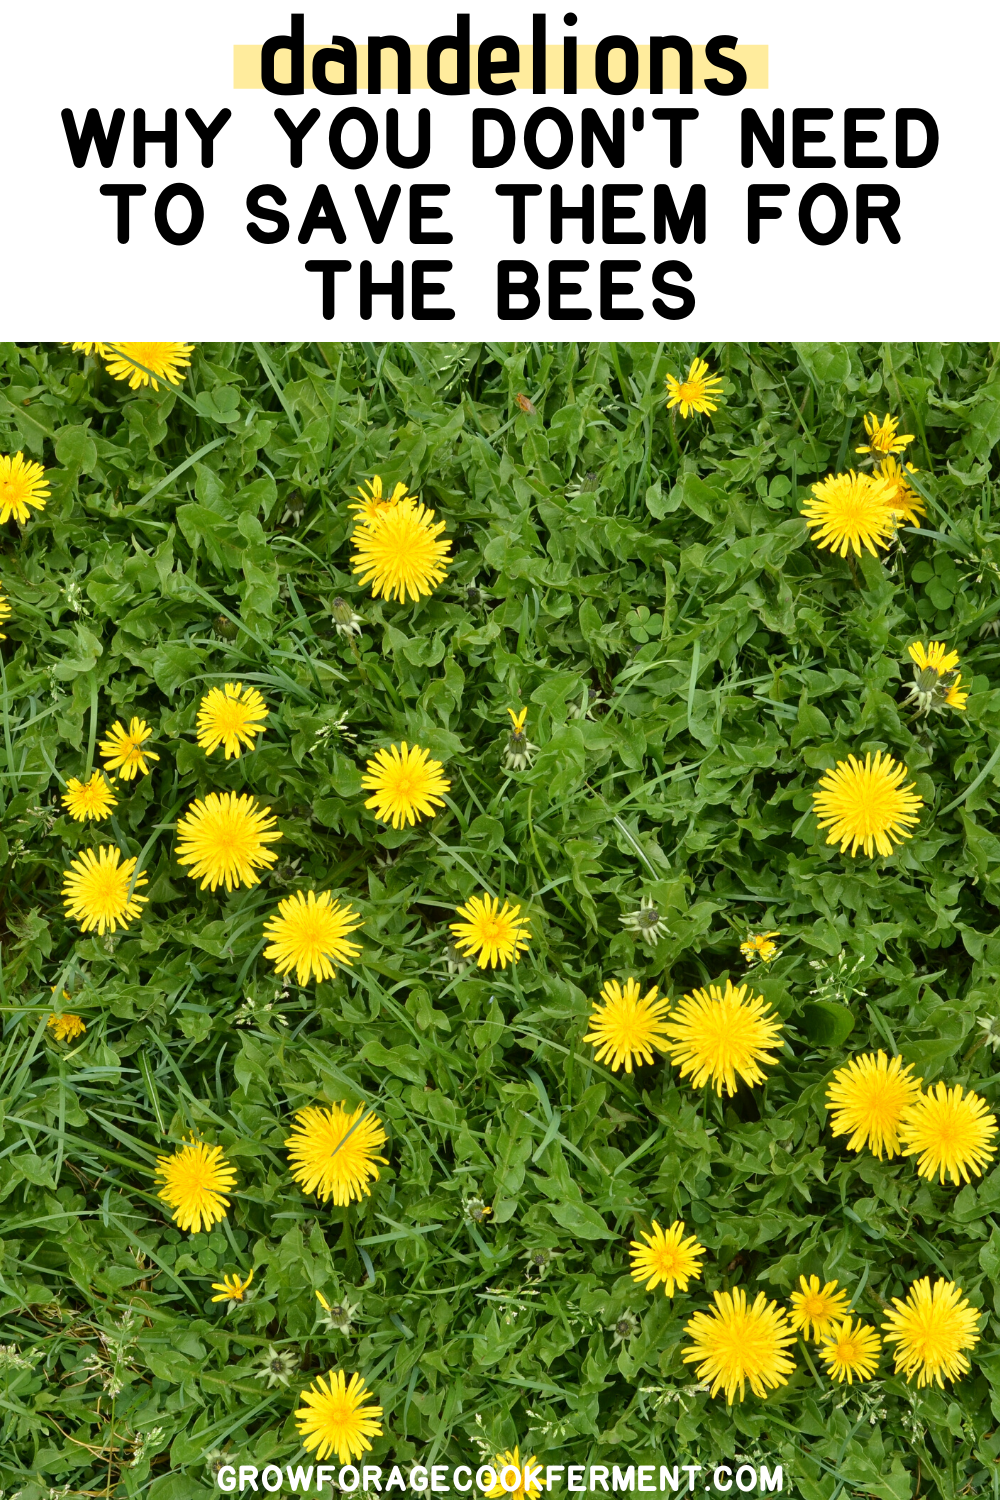 6 Reasons You Don T Need To Save Dandelions For The Bees In 2020 Dandelion Wild Edibles Wild Food